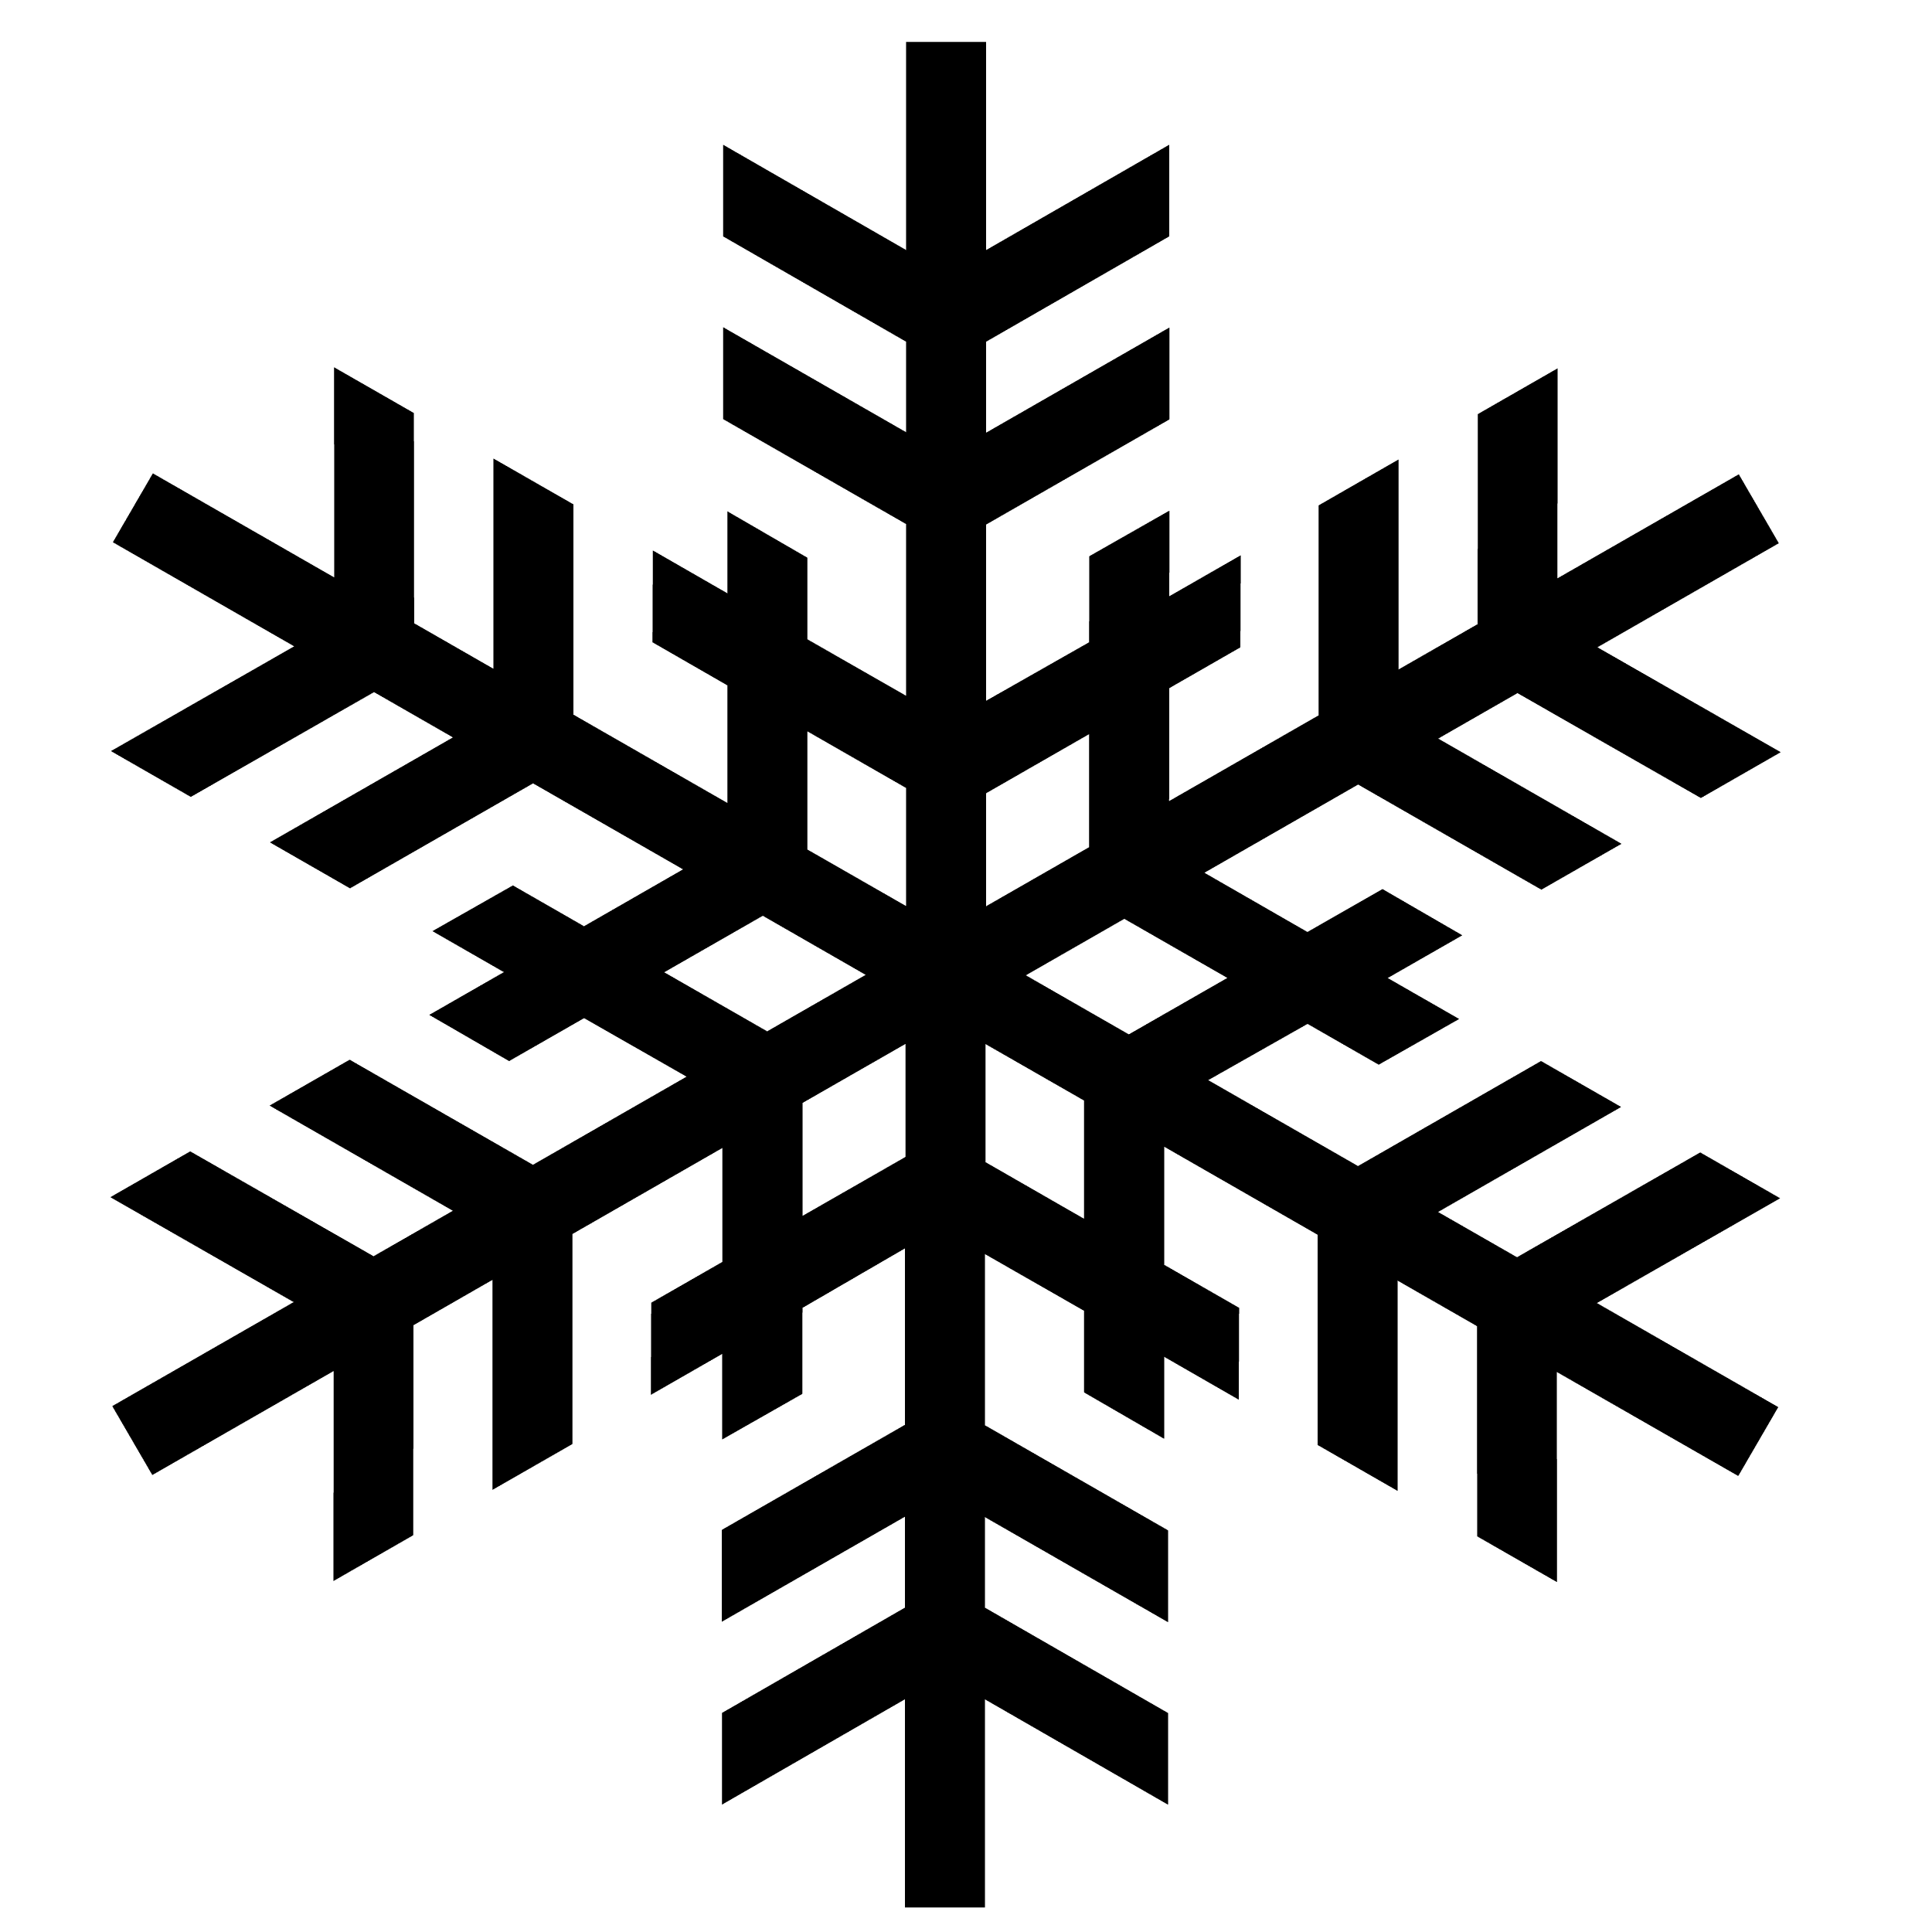 snowflake%20transparent%20background